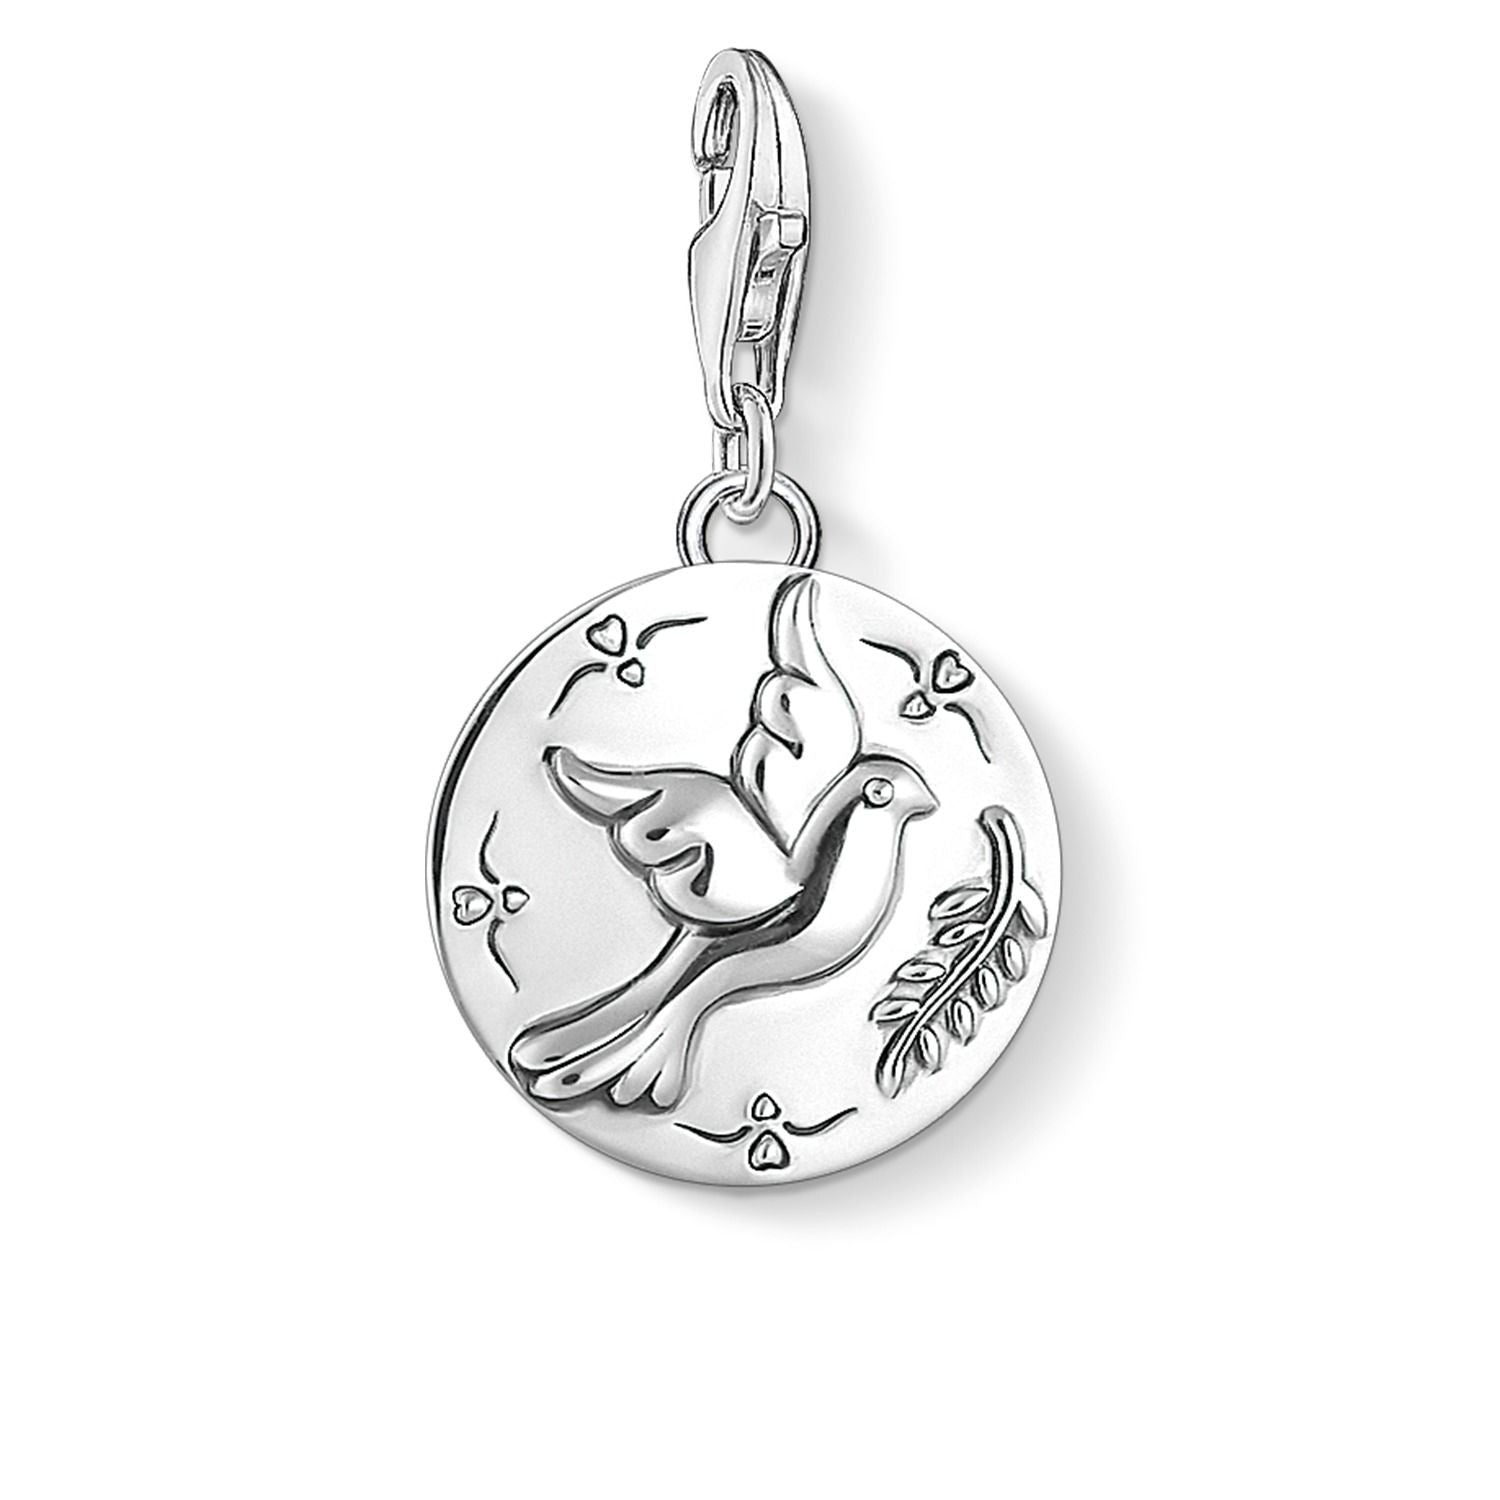 Thomas Sabo Charm Club Disc Dove 1701-637-21